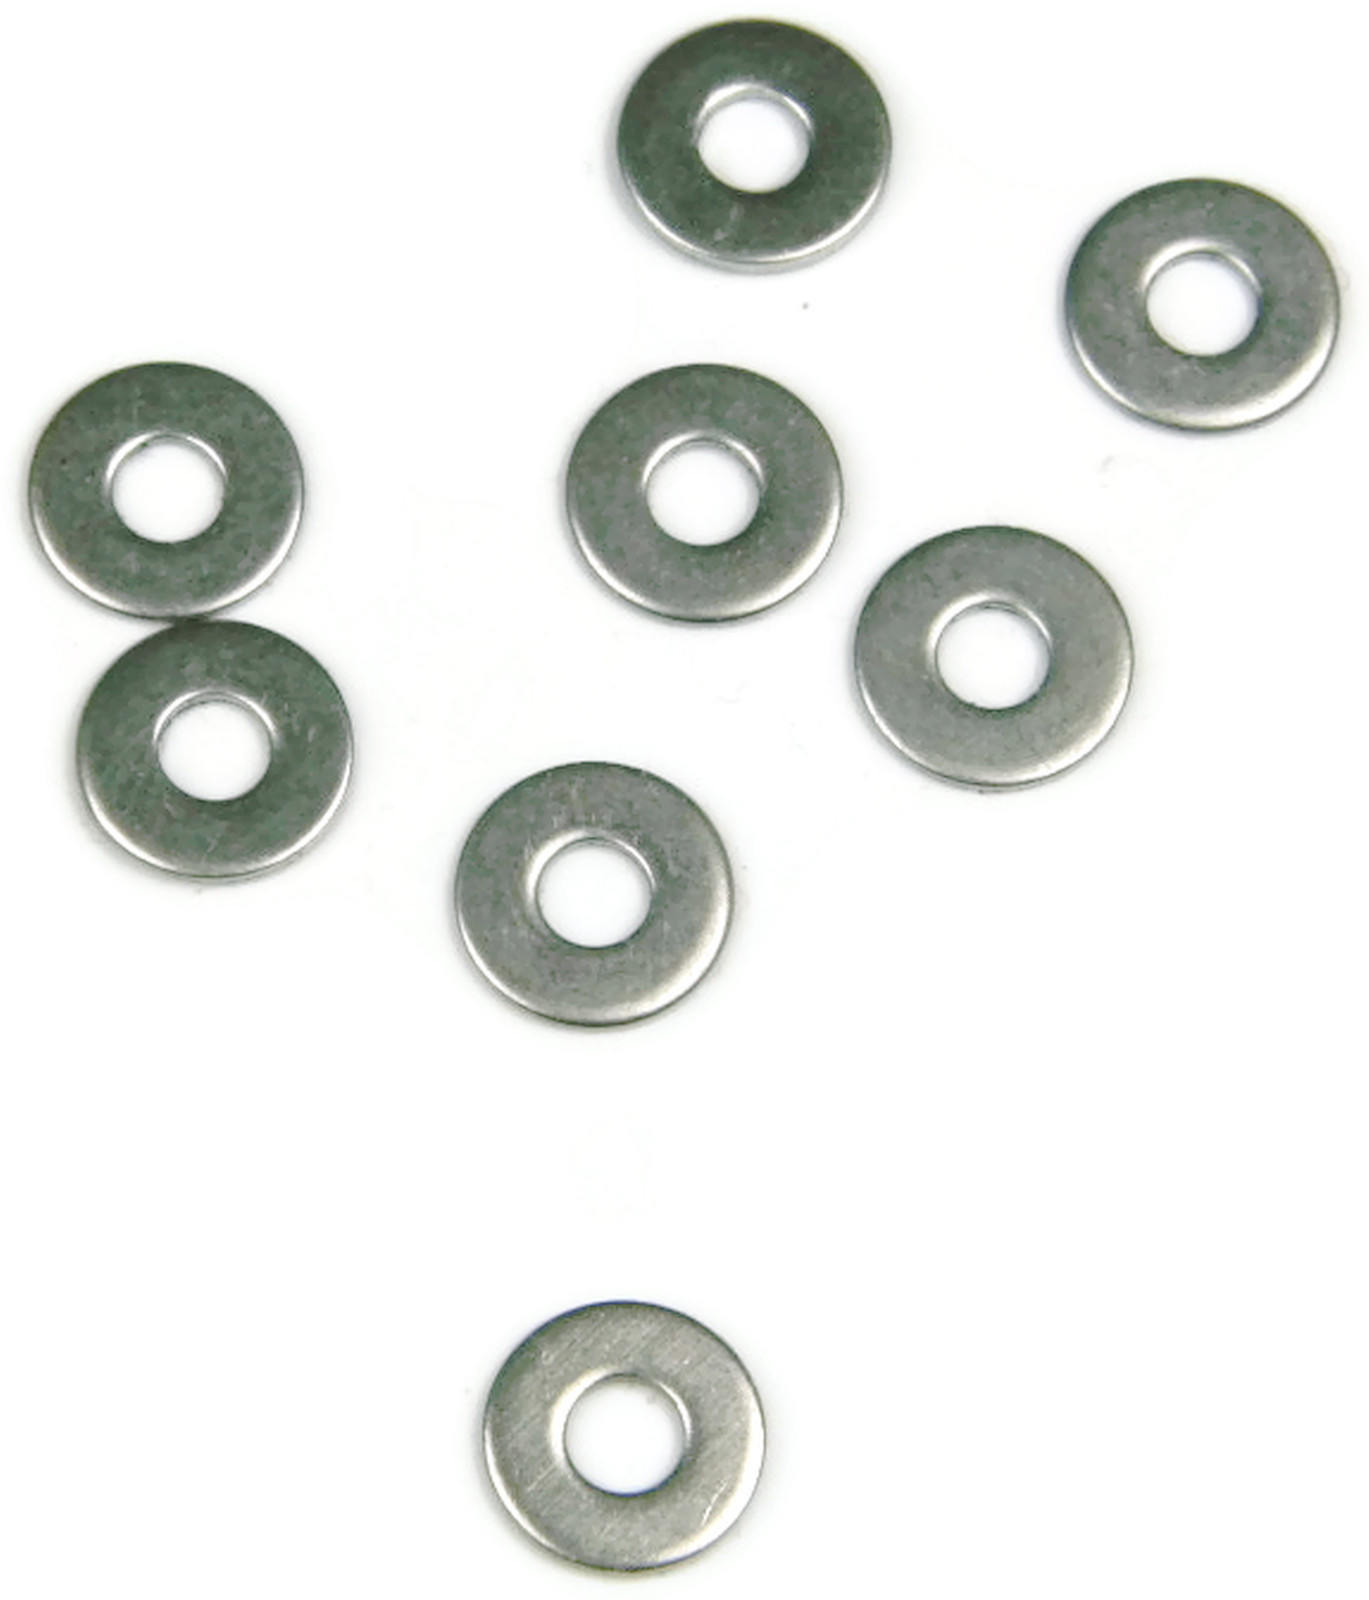 Stainless Steel NAS Flat Washer #6 Qty 100